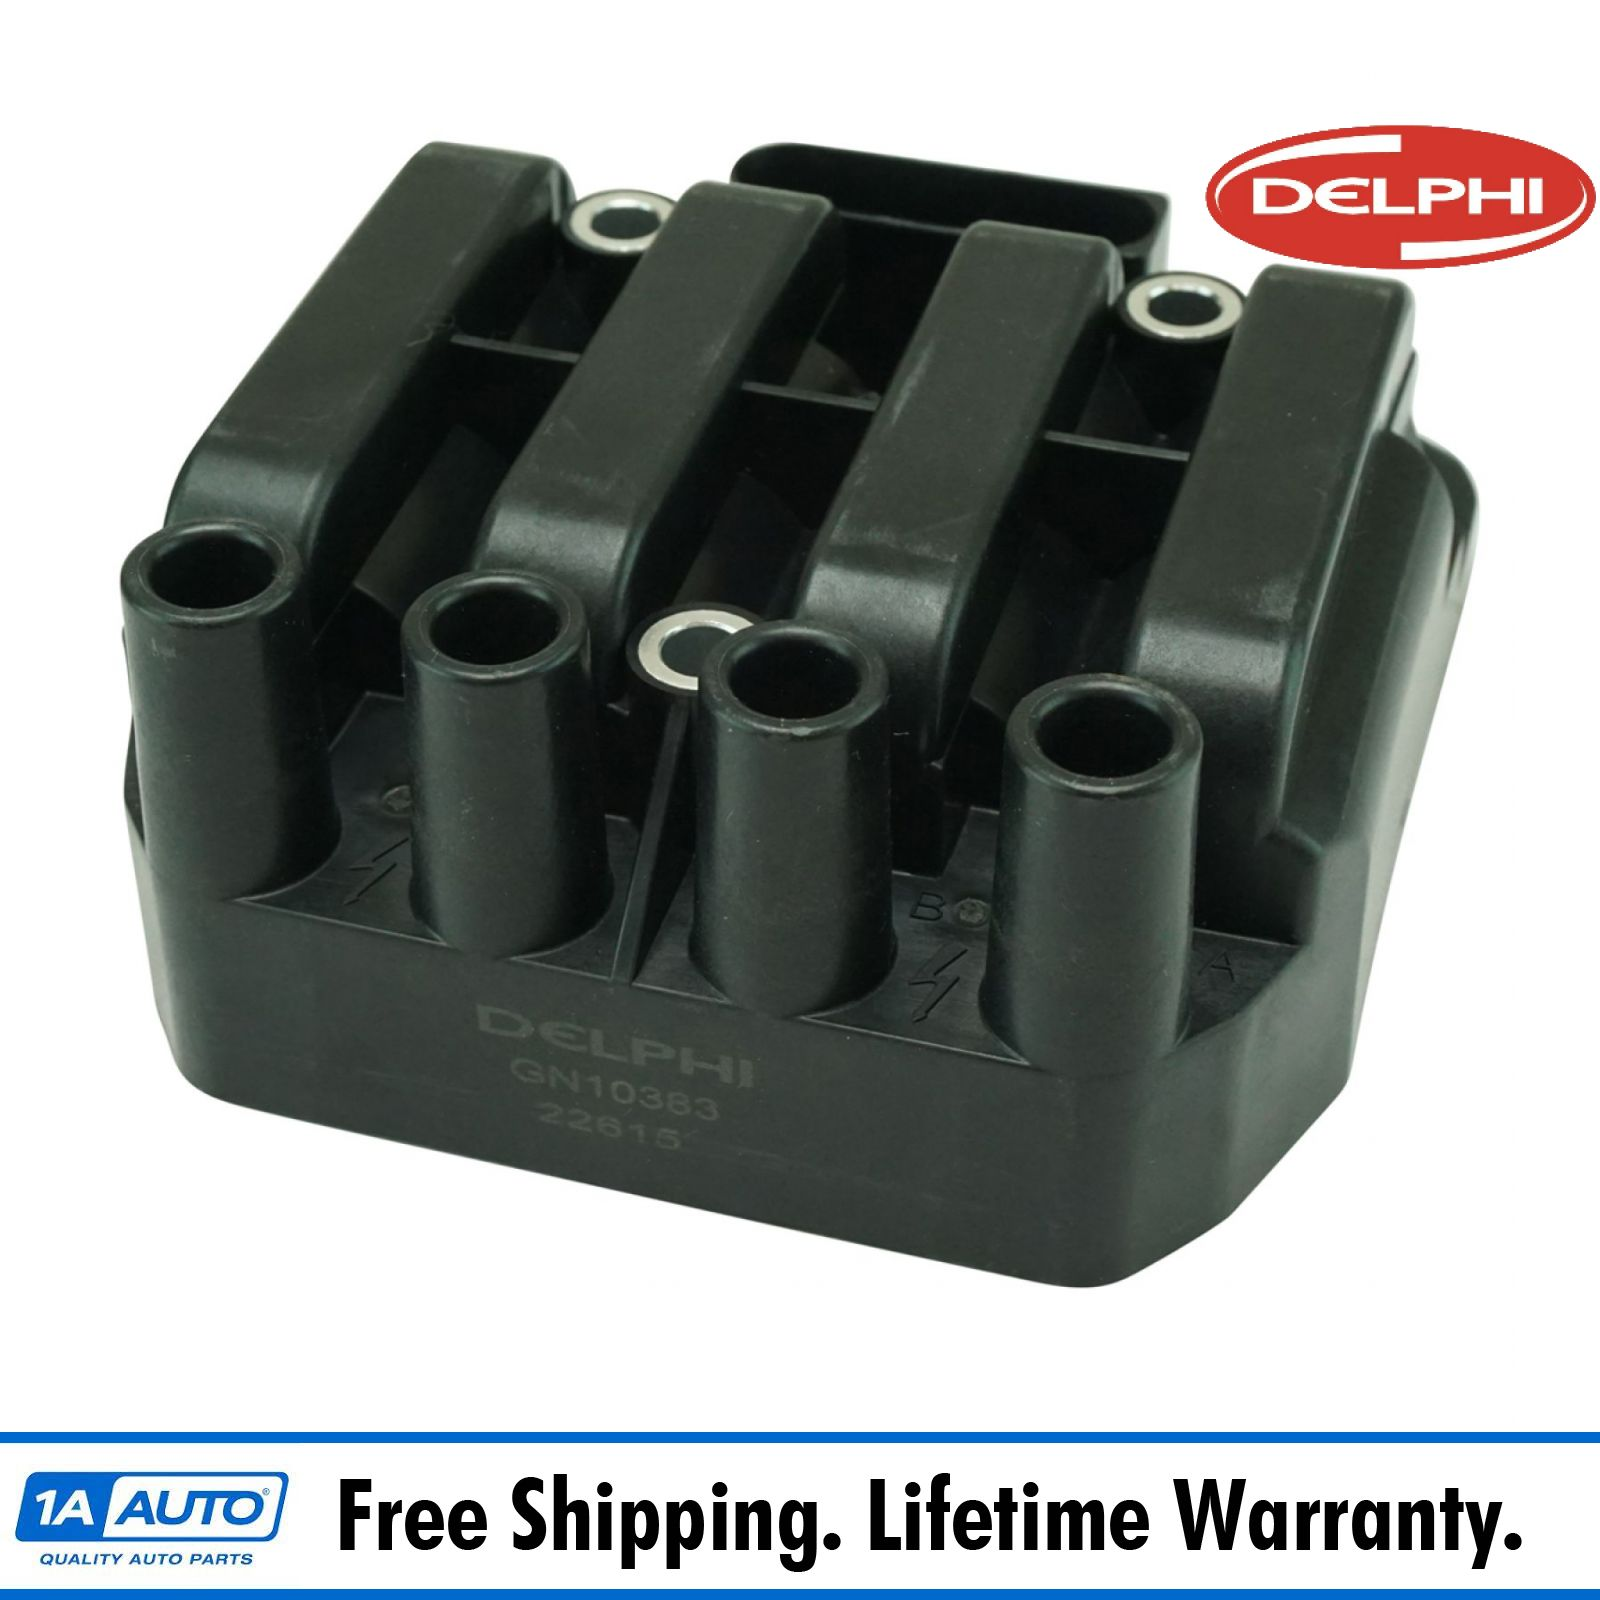 Ignition Coil Golf: Delphi GN10383 Ignition Coil Pack For VW Beetle Golf Jetta